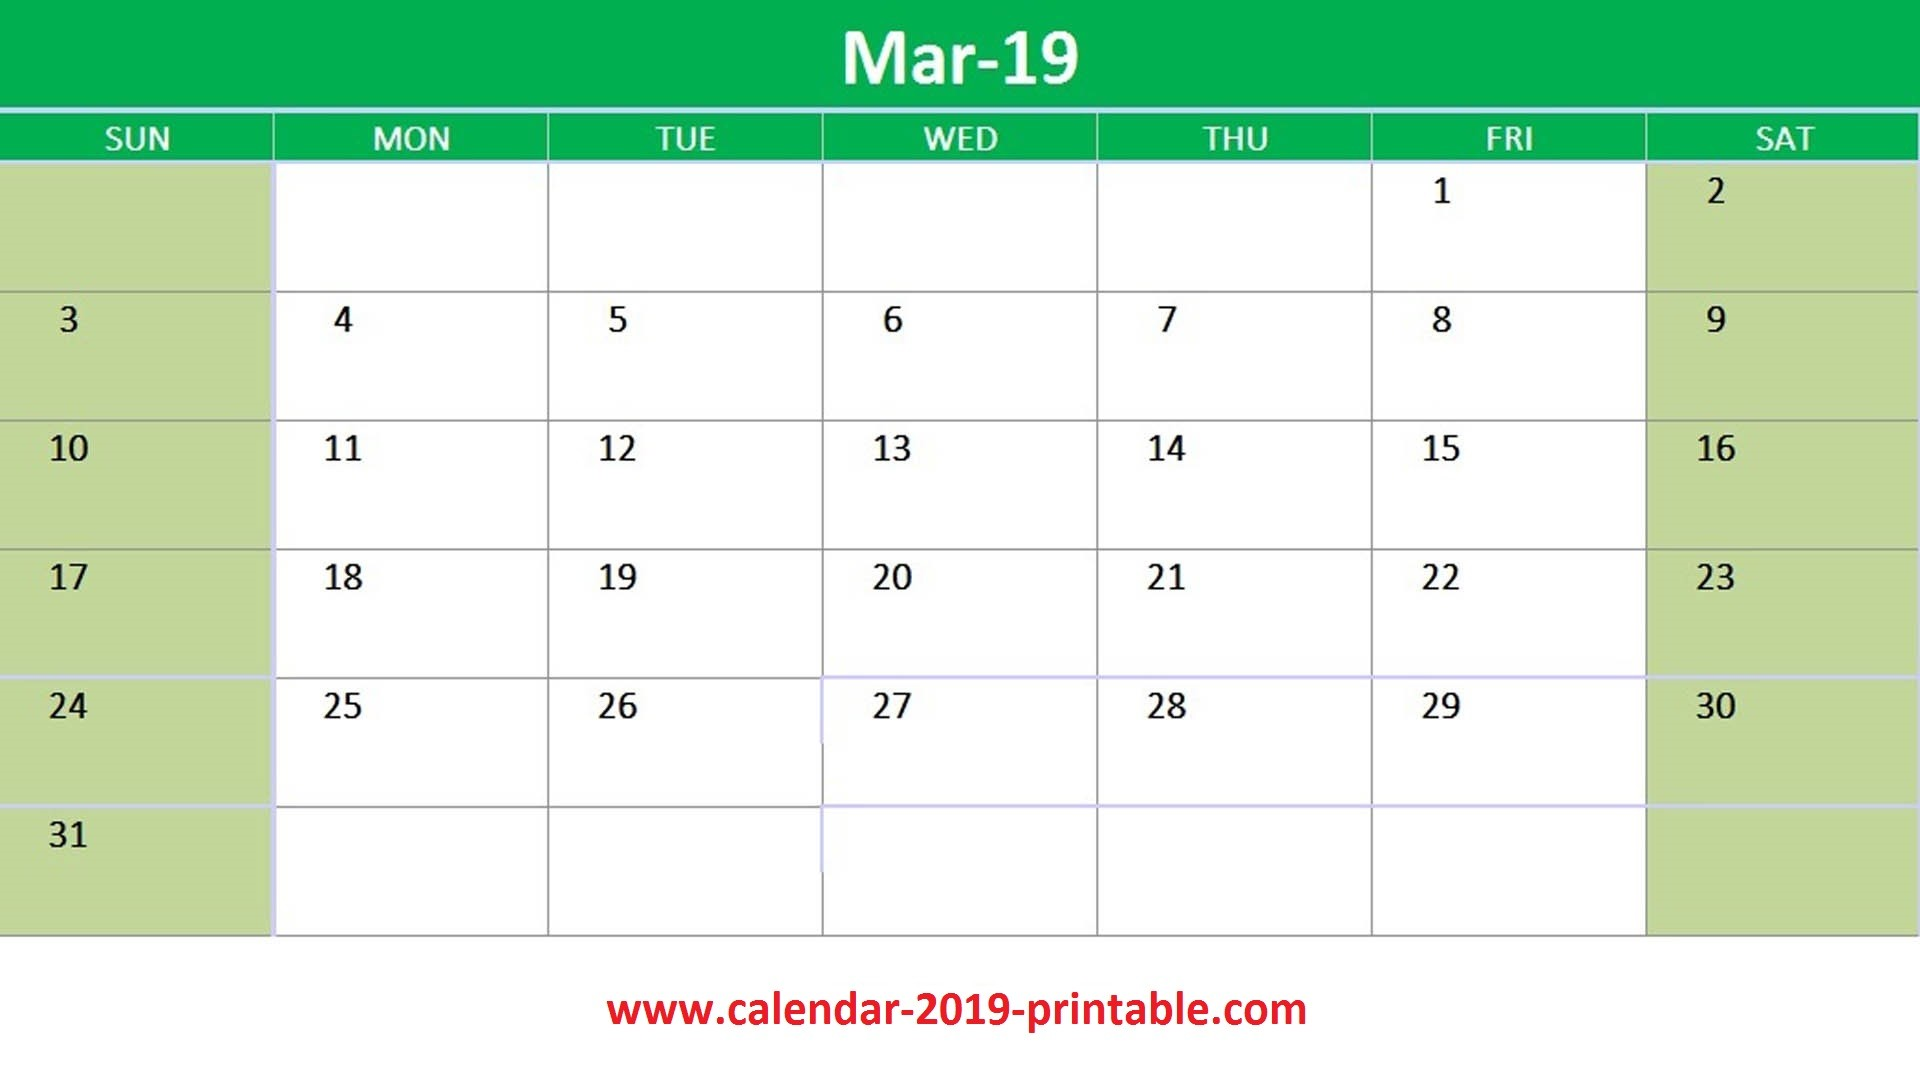 March Calendar 2019 Más Recientes March 2019 Calendar Printable Templates Of March Calendar 2019 Más Populares February March Calendar 2019 2018 Printable Calendar Store